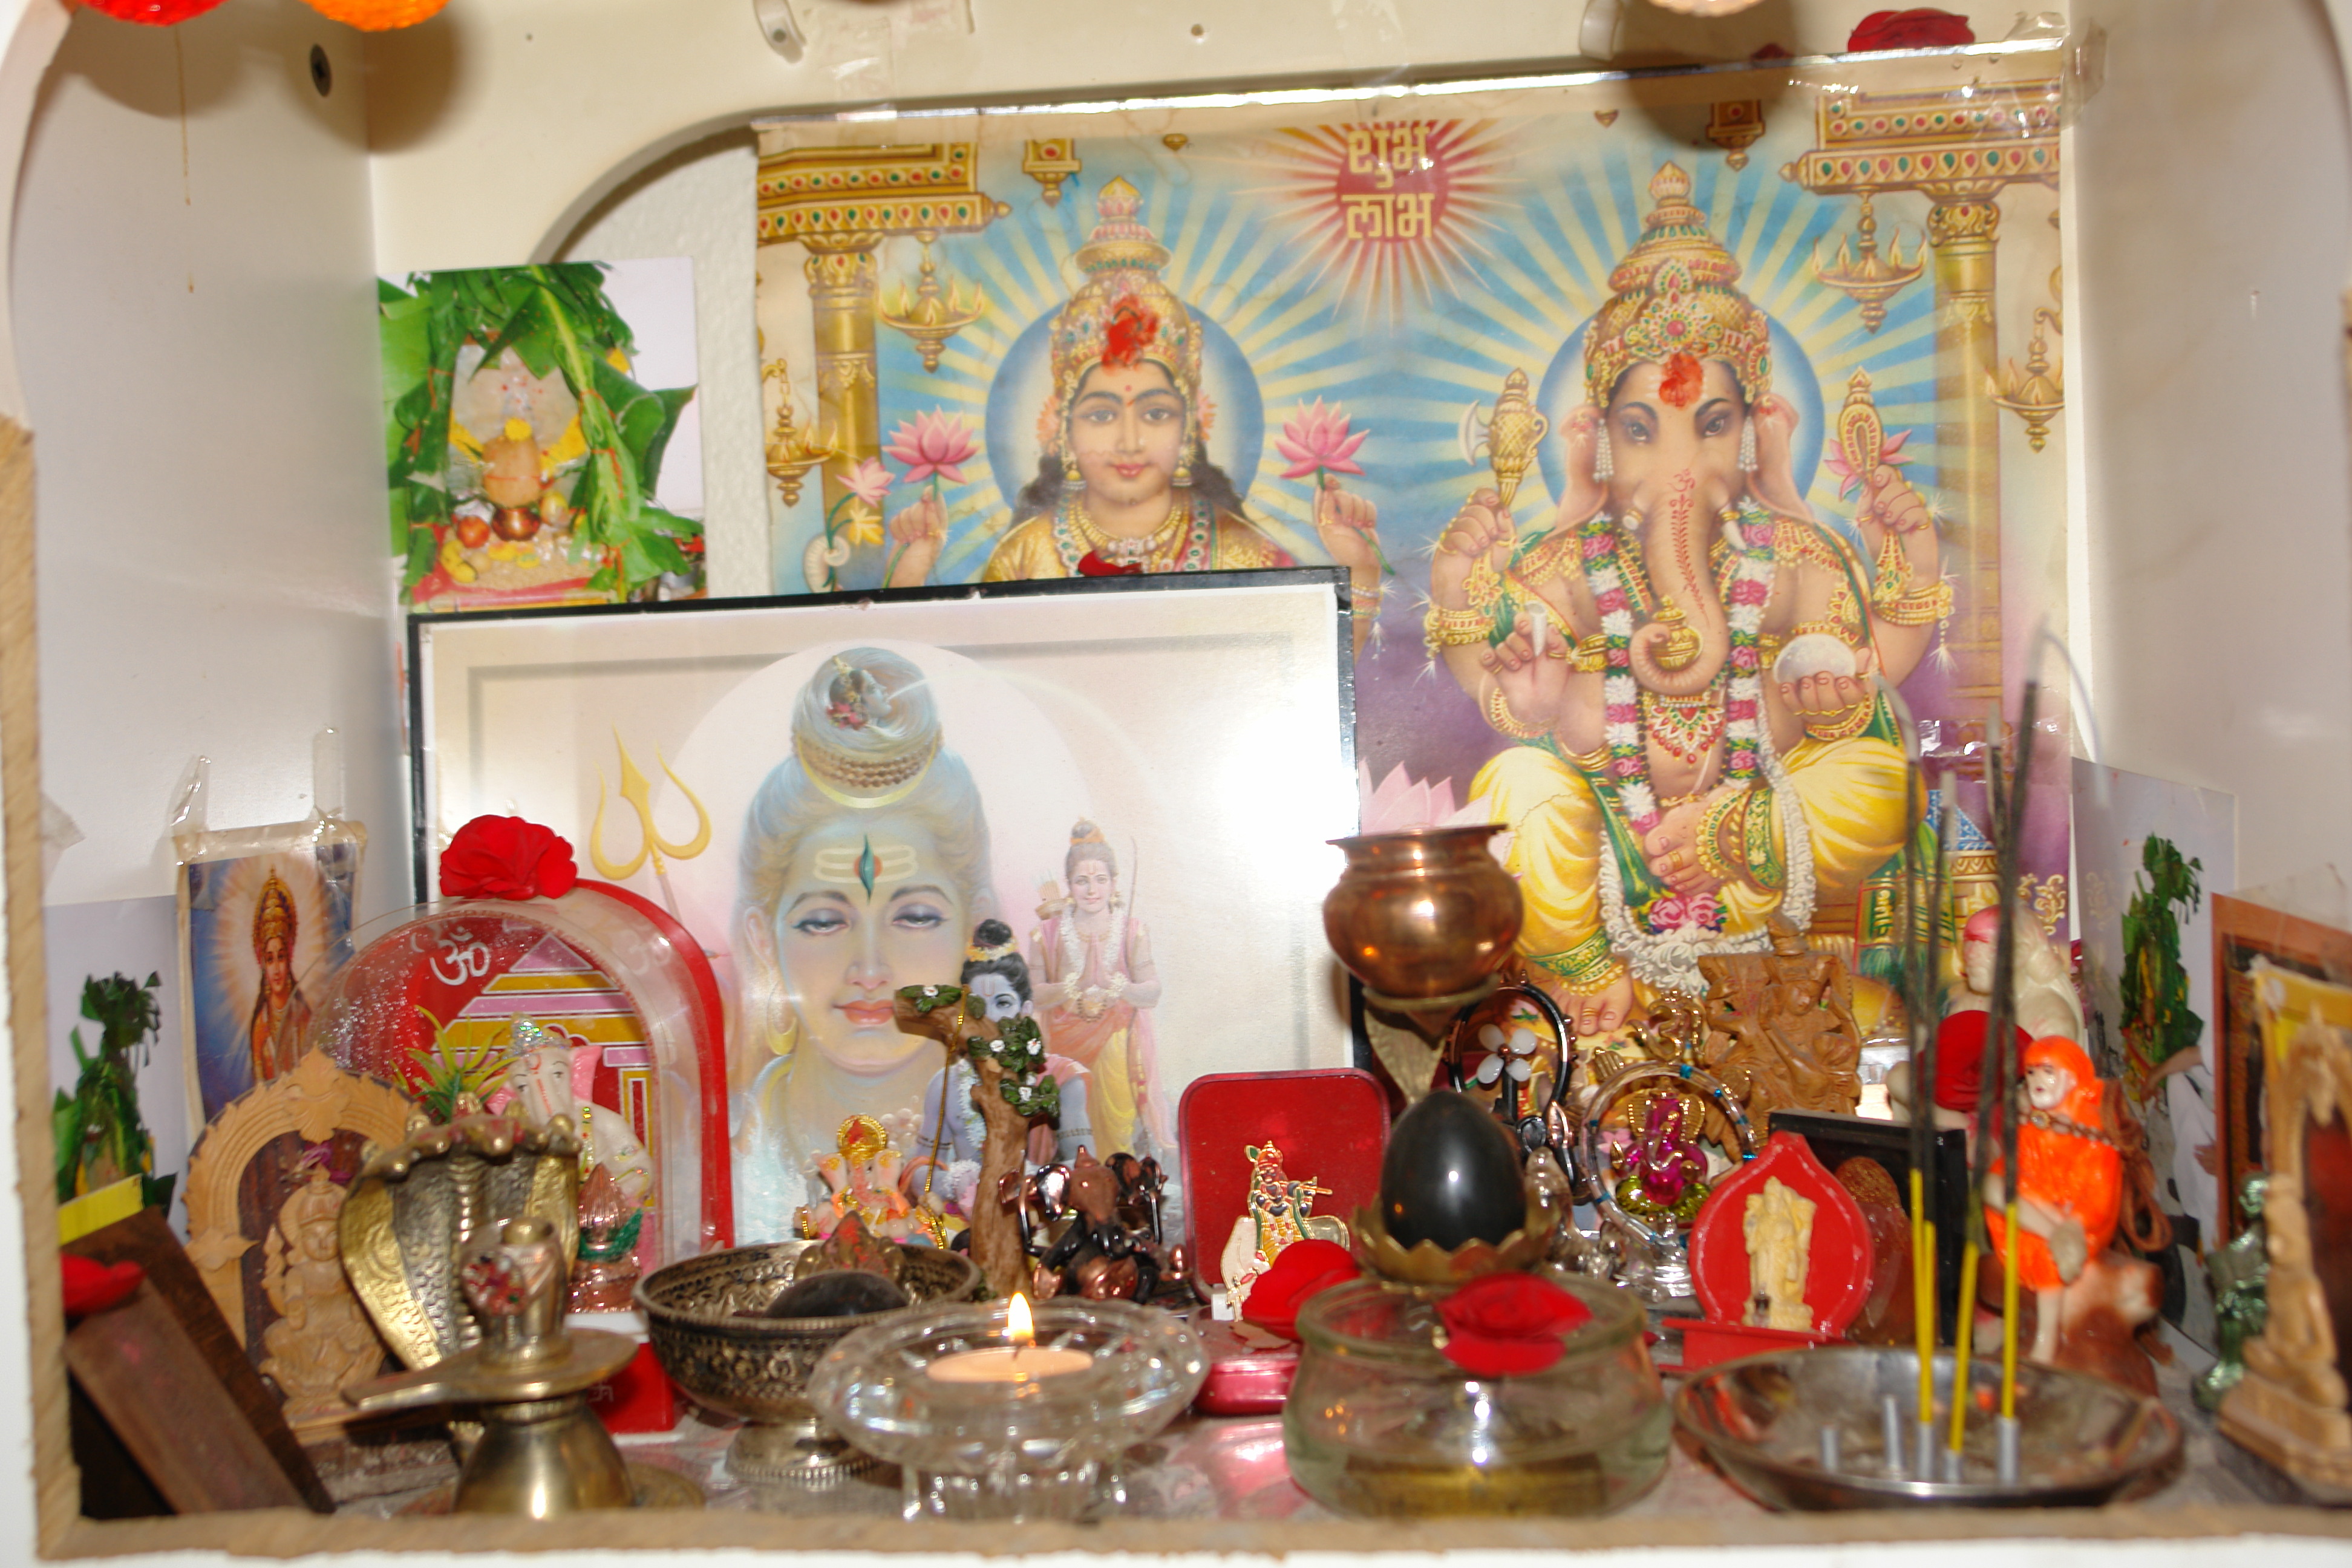 temple room designs home with Puja on Puja also Make Thermocol Temple For Ganpati as well 9h2fmu2a  D8 AA D8 B5 D8 A7 D9 88 D9 8A D8 B1  D9 88  D9 85 D8 AF D9 84 D9 87 D8 A7 D9 8A  D9 86 D9 82 D8 A7 D8 B4 D9 8A  D8 B3 D8 A7 D8 AE D8 AA D9 85 D8 A7 D9 86 additionally Pooja Room likewise 457959855843427972.